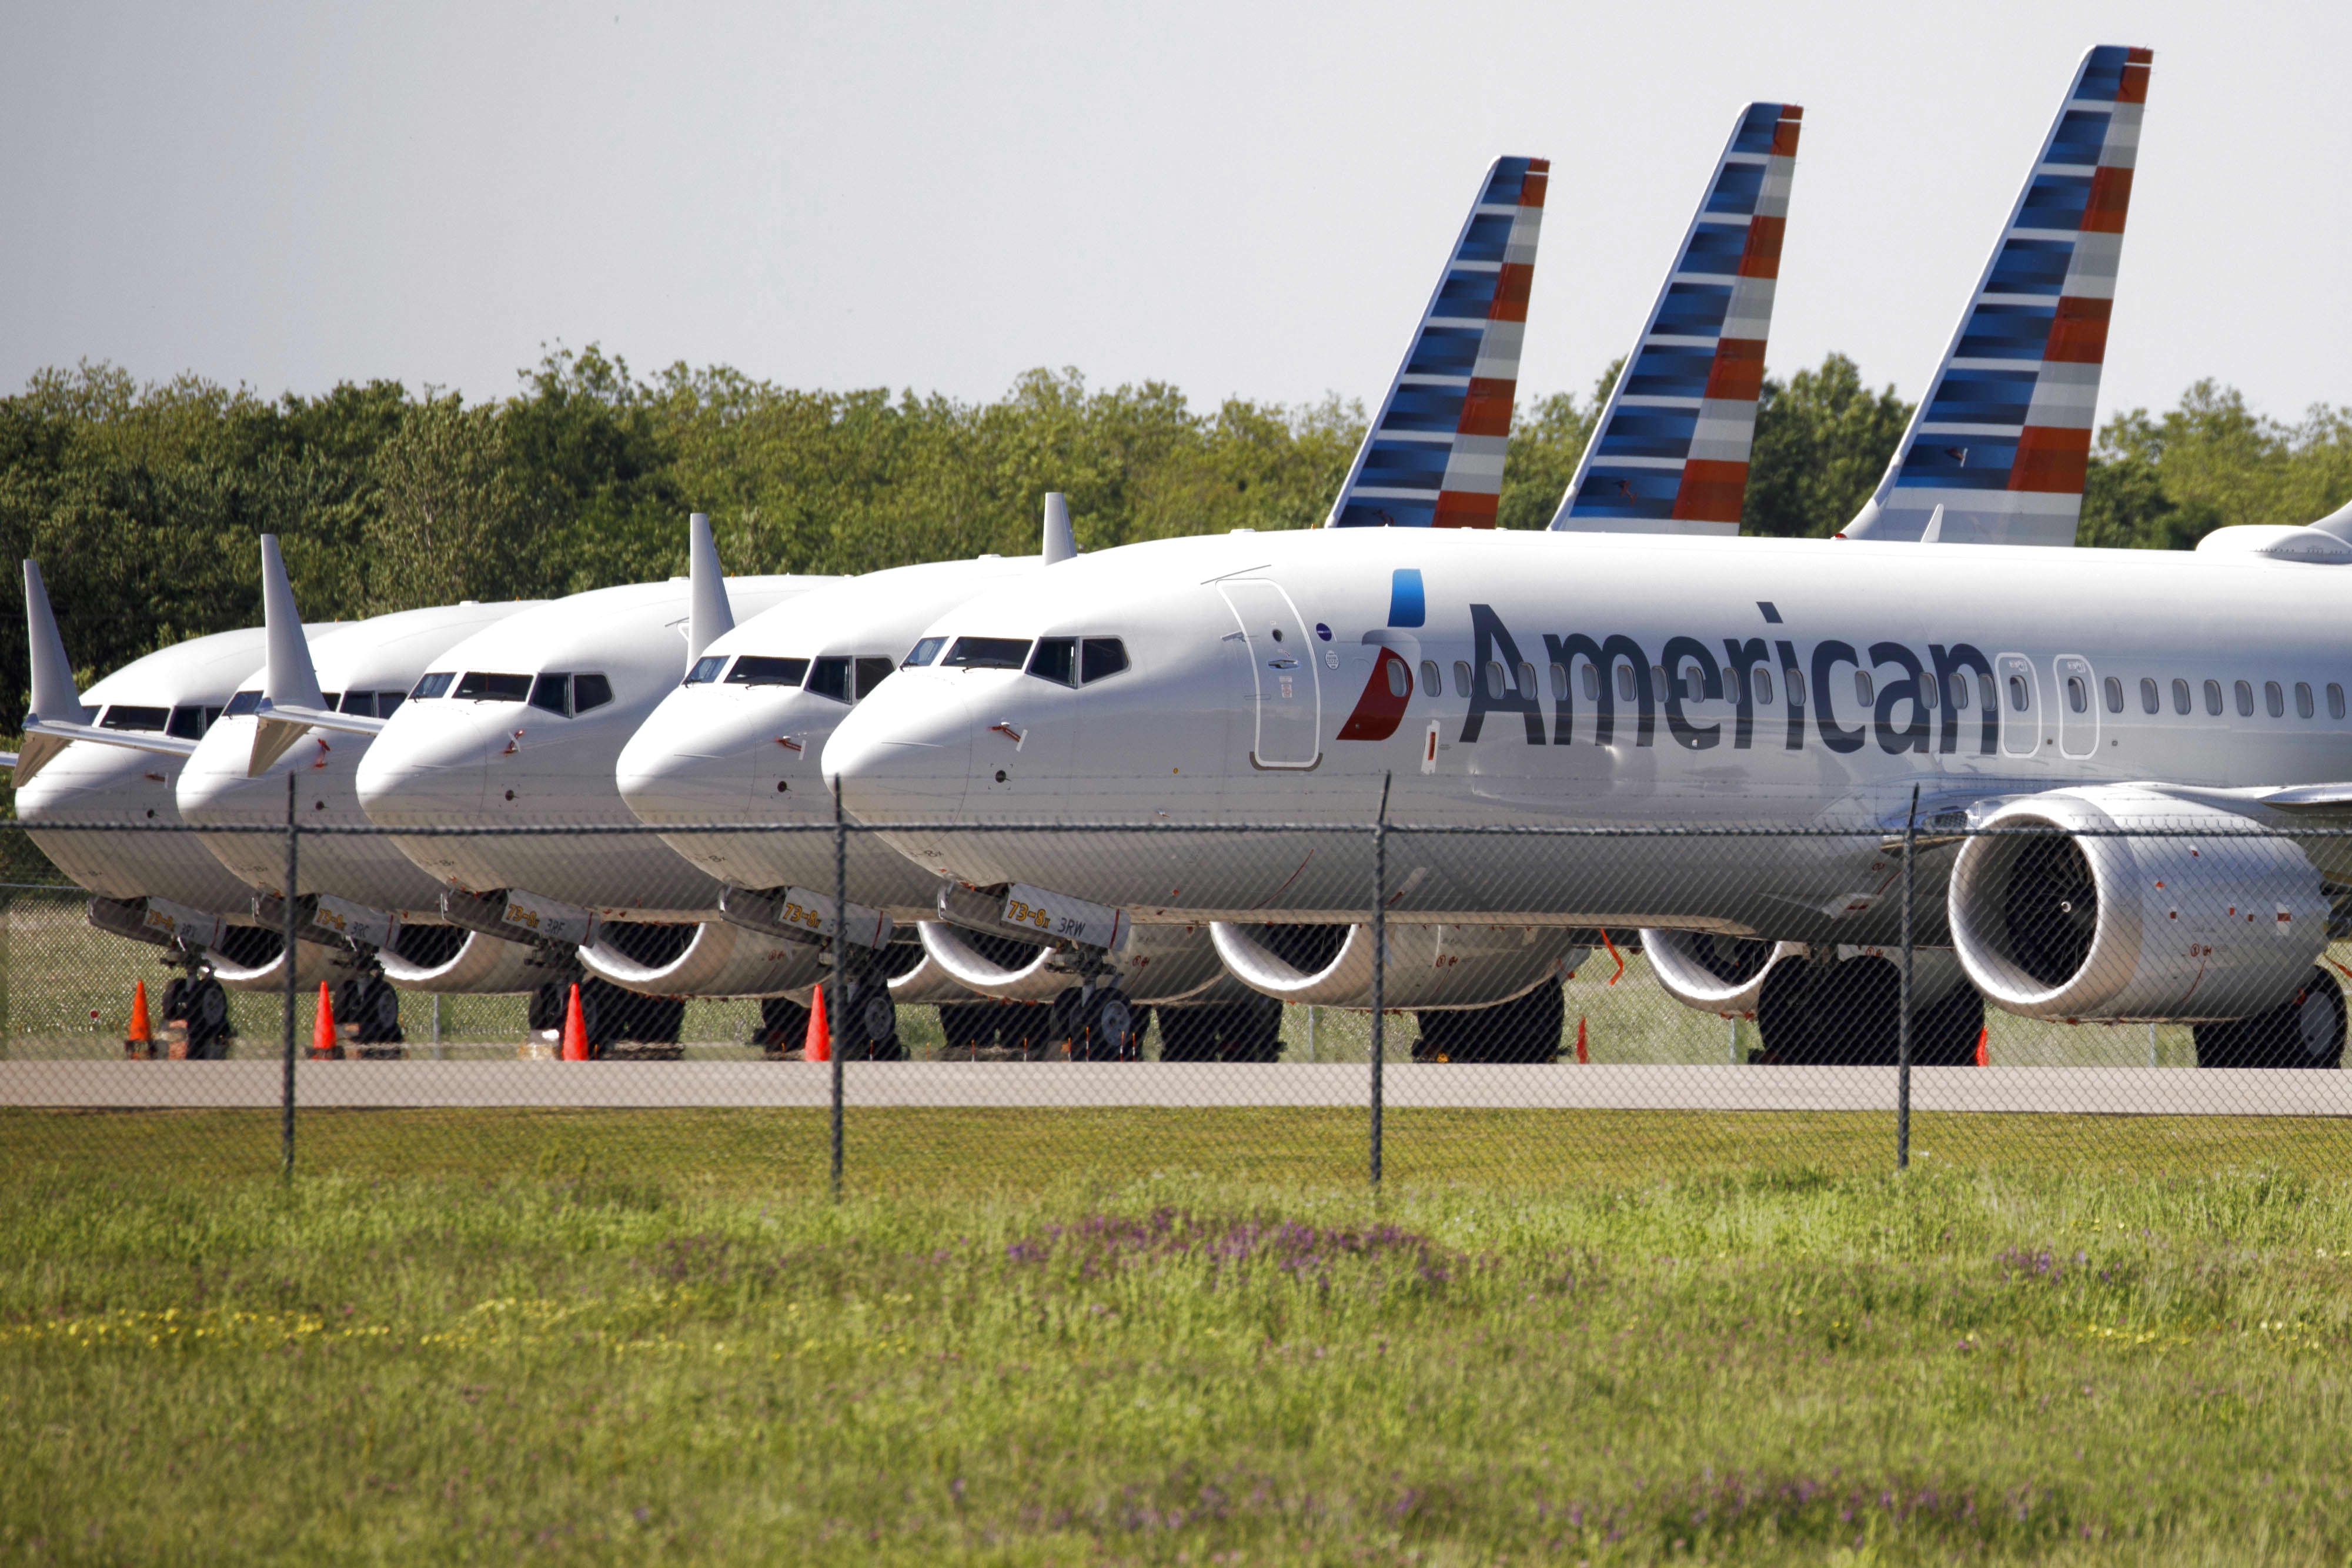 American Airlines starts Boeing 737 Max flights to boost confidence in jets after fatal crashes